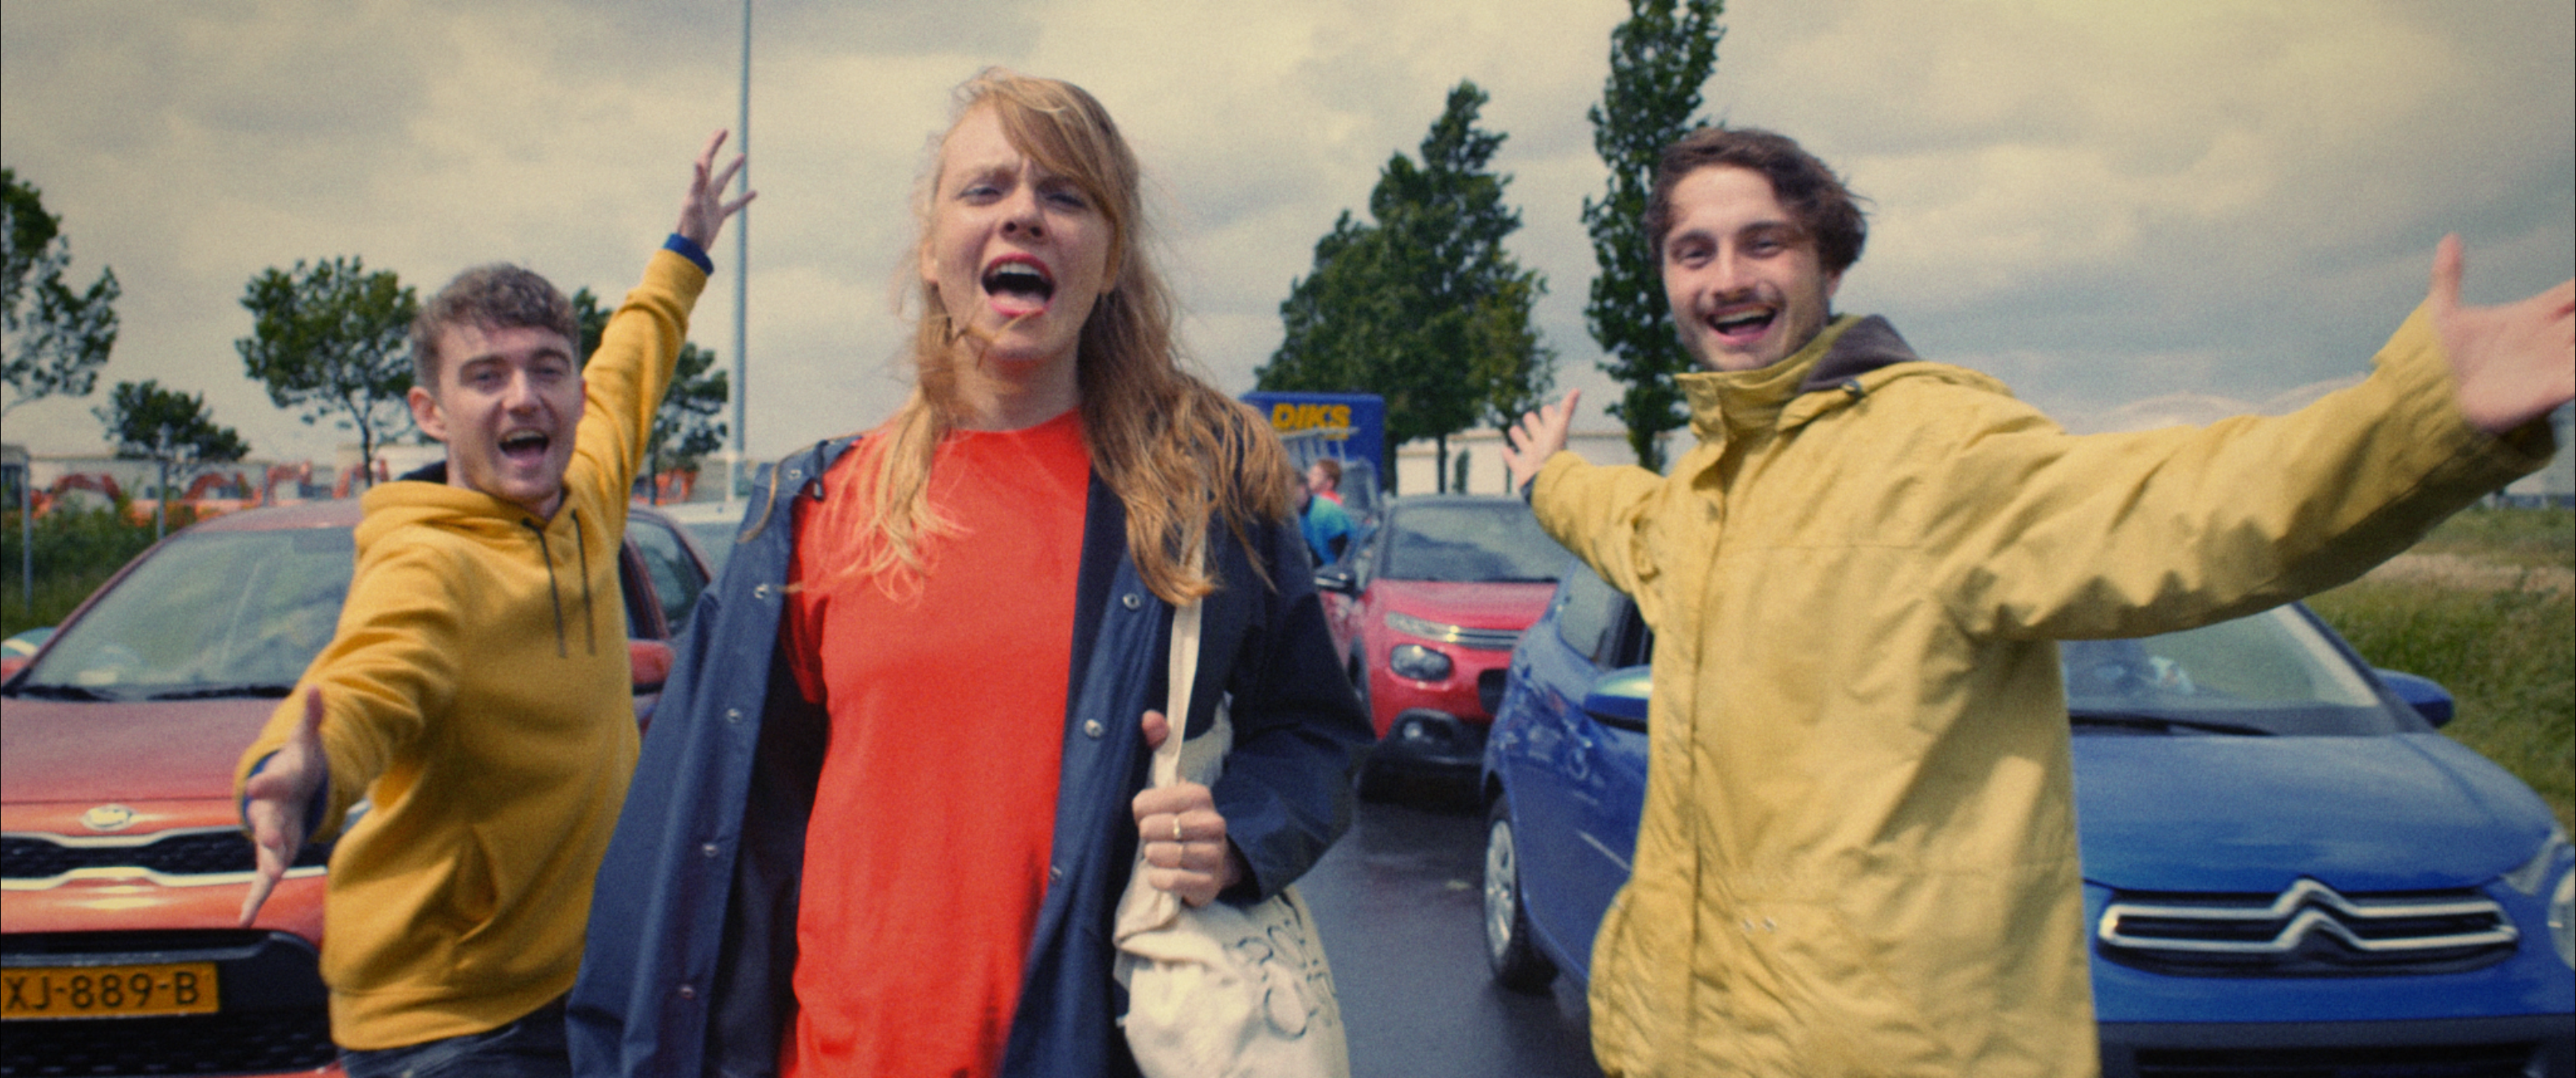 Still from the promo film Nieuwe Dag Op Set. There are three people walking in between cars on a busy highway. The girl in front seems to be singing and the two boys besides her are doing jazz hands.